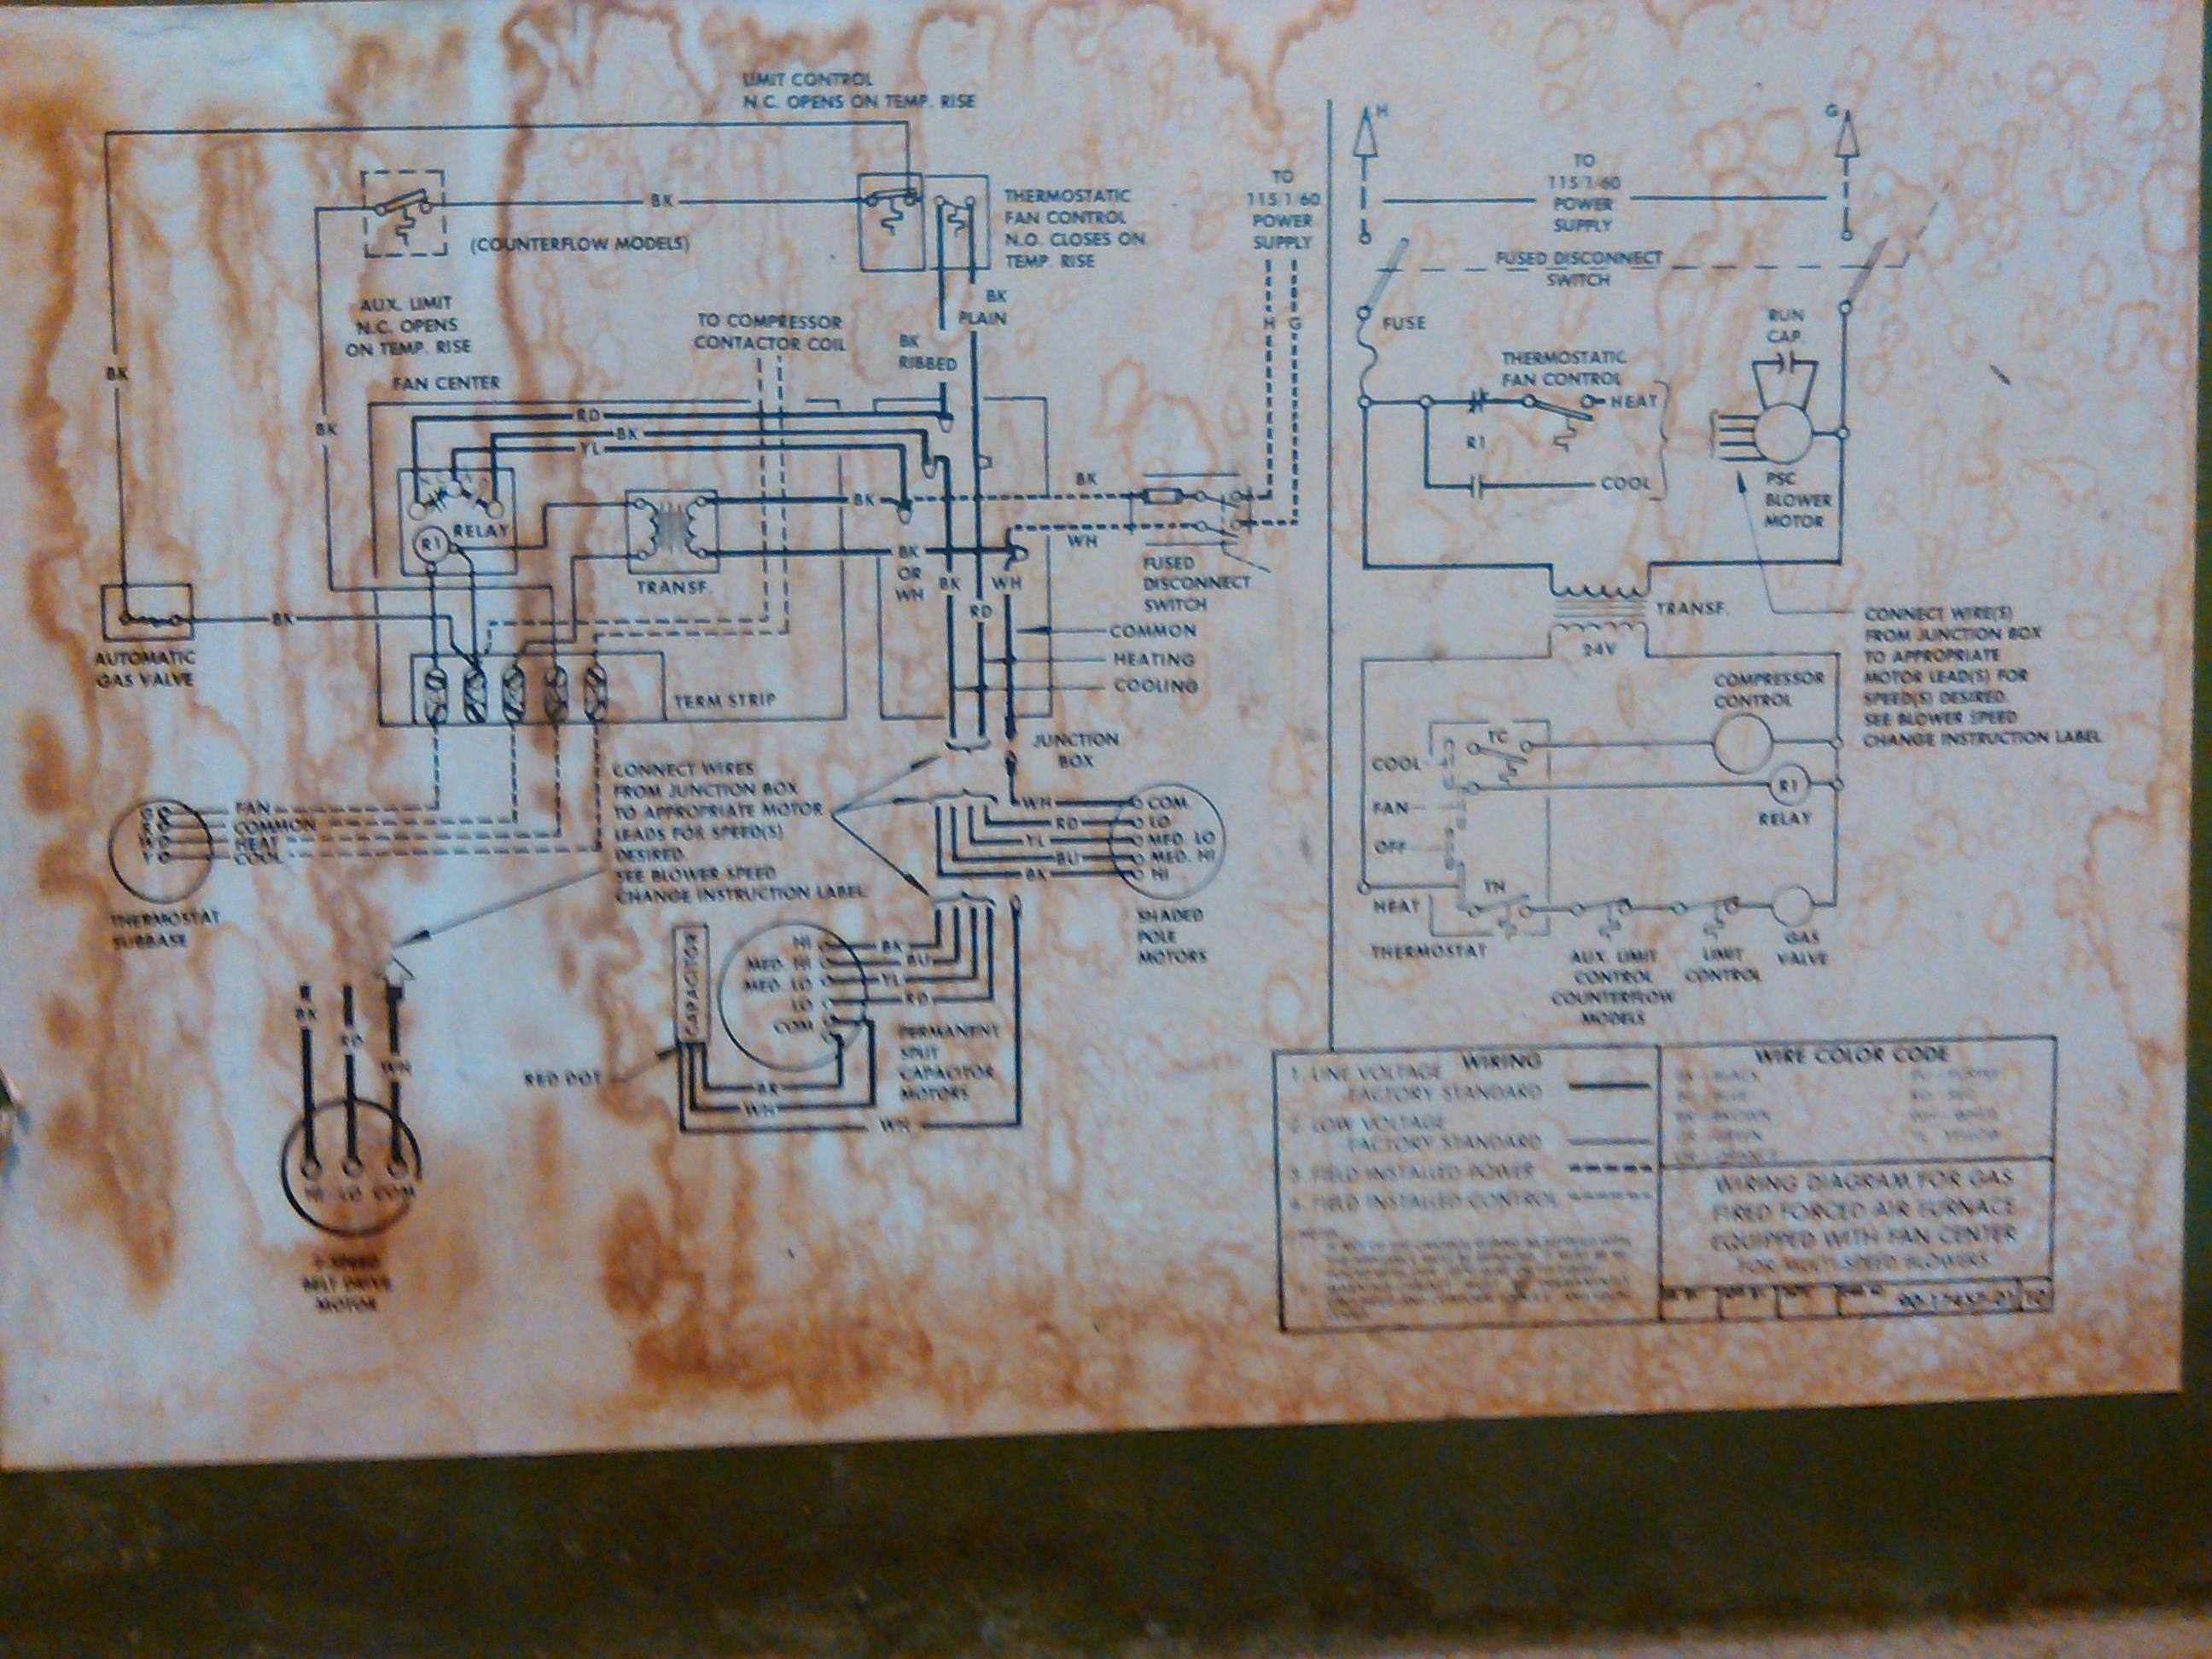 Hvac - Replace Old Furnace Blower Motor With A New One But The Wires - Electric Furnace Wiring Diagram